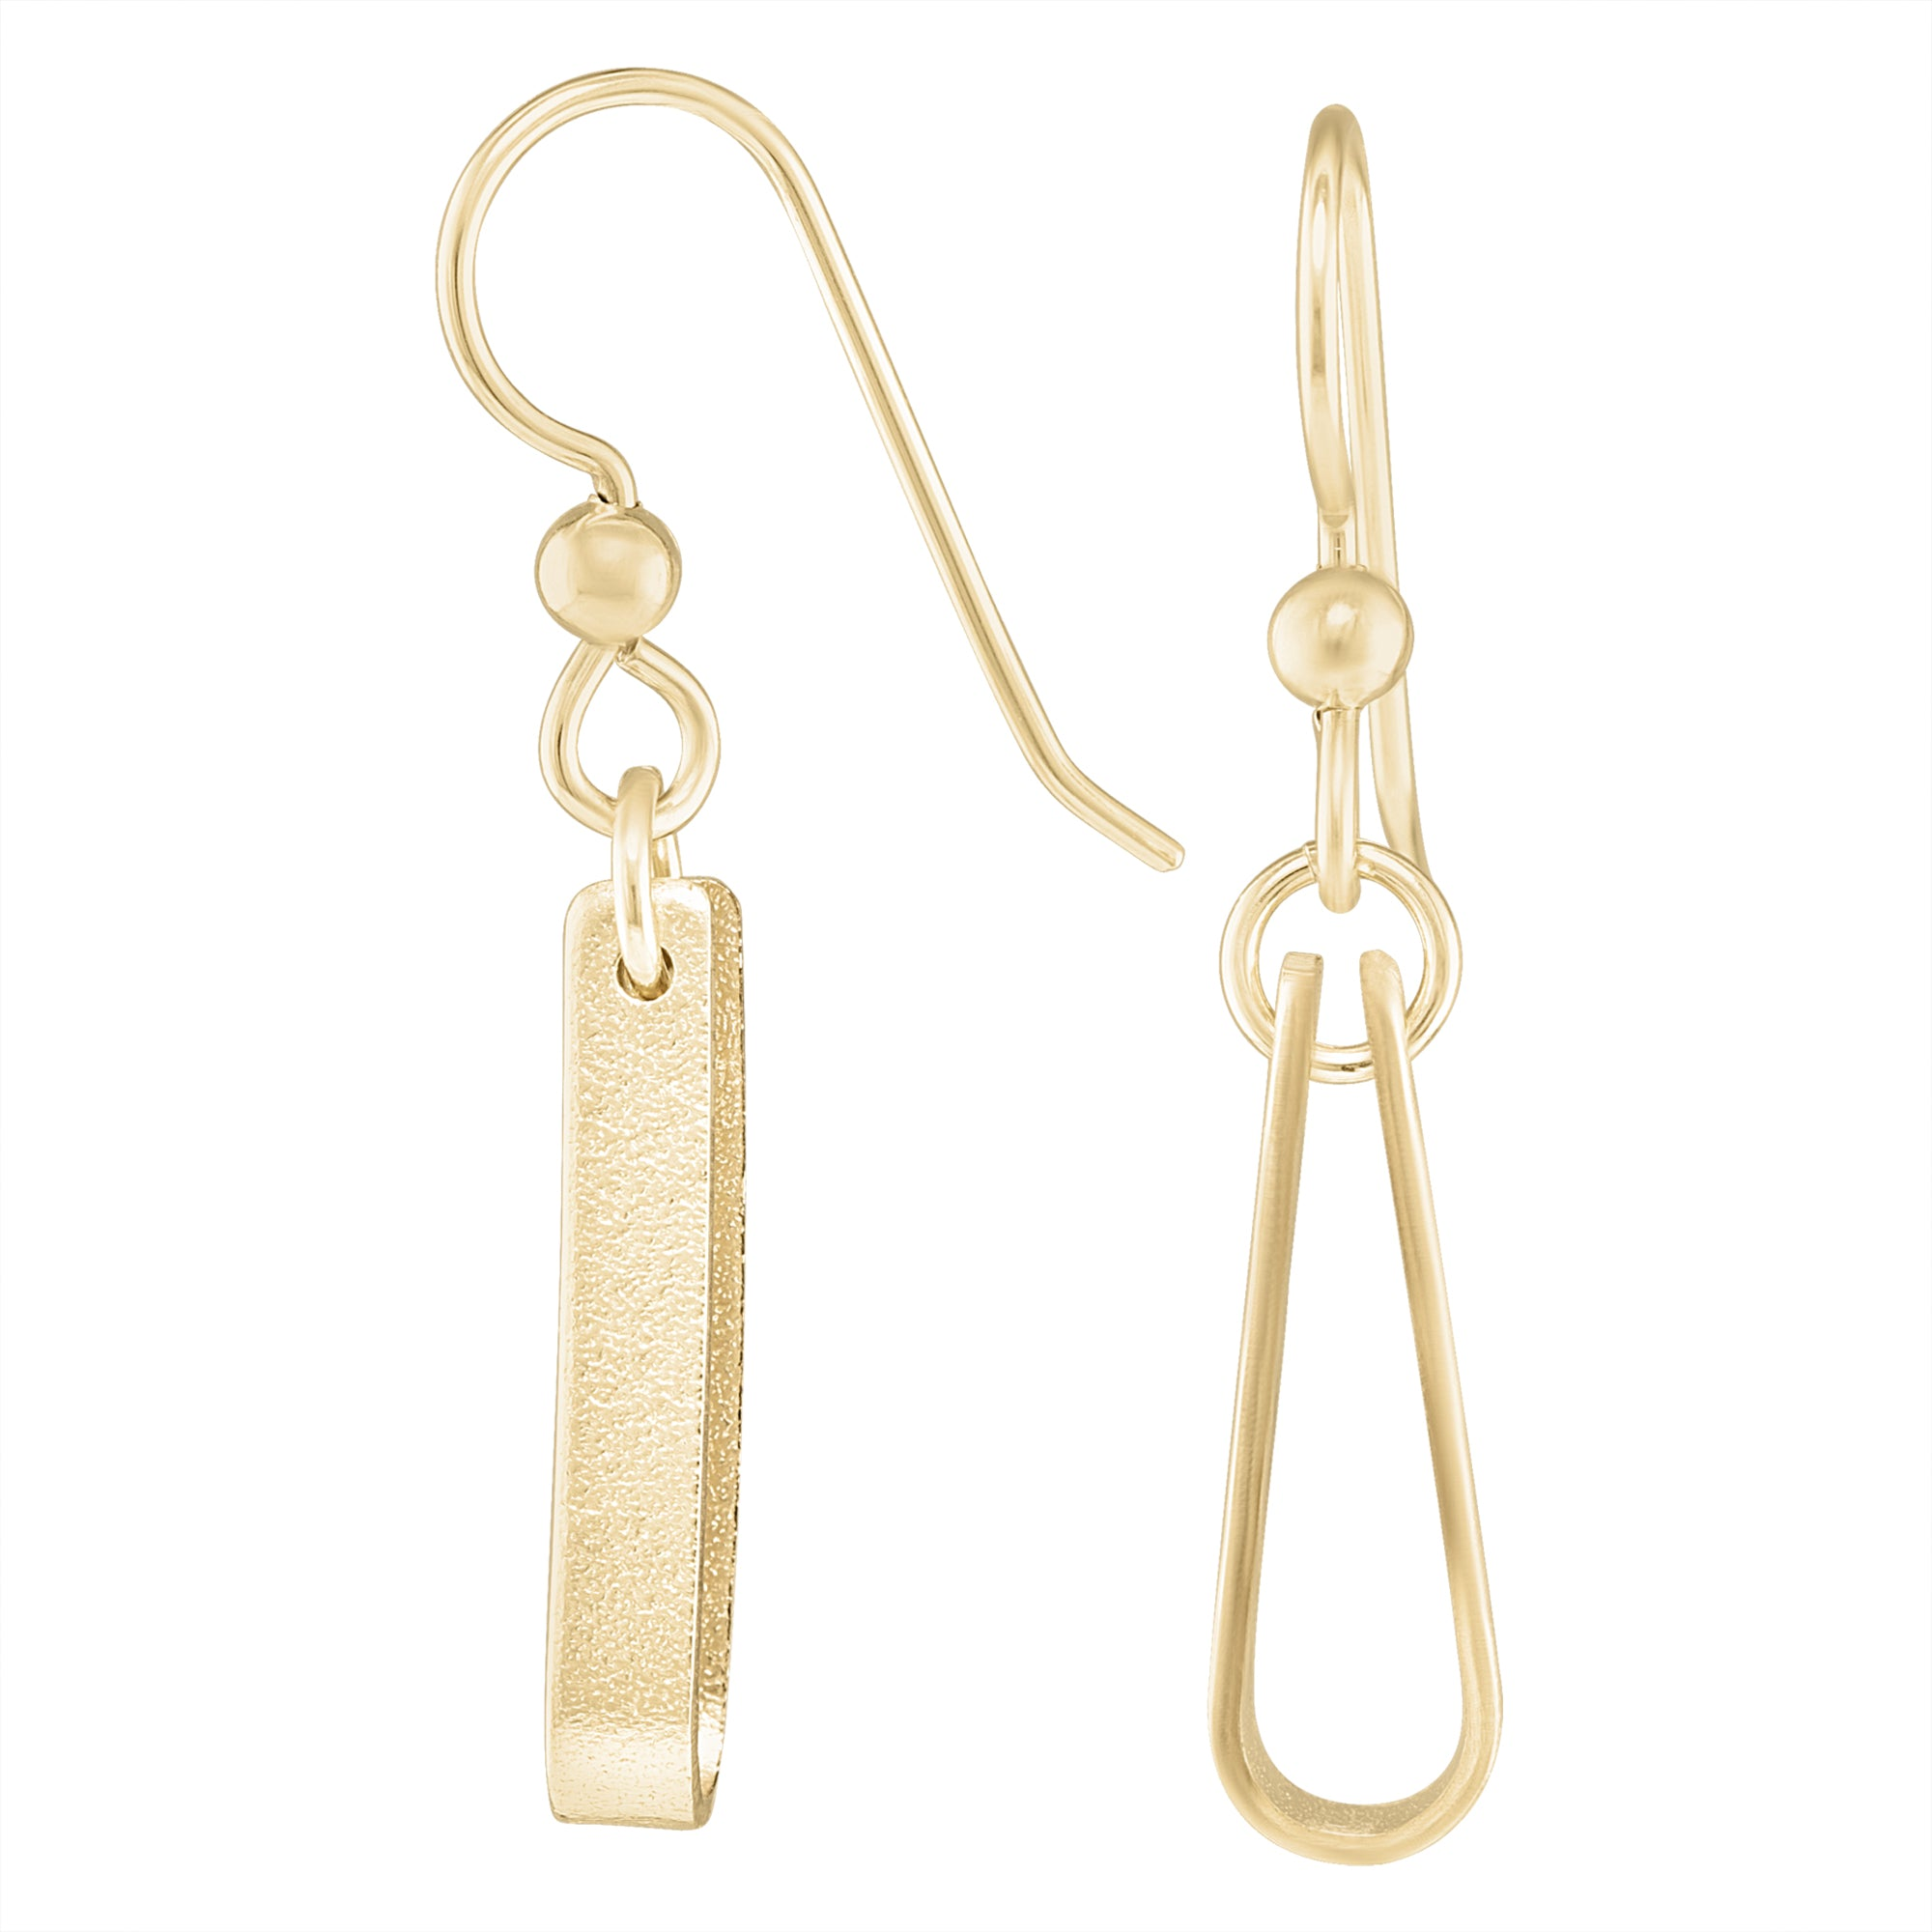 Minimalist 14K Yellow Gold Fill Strap Style Dangle Earrings